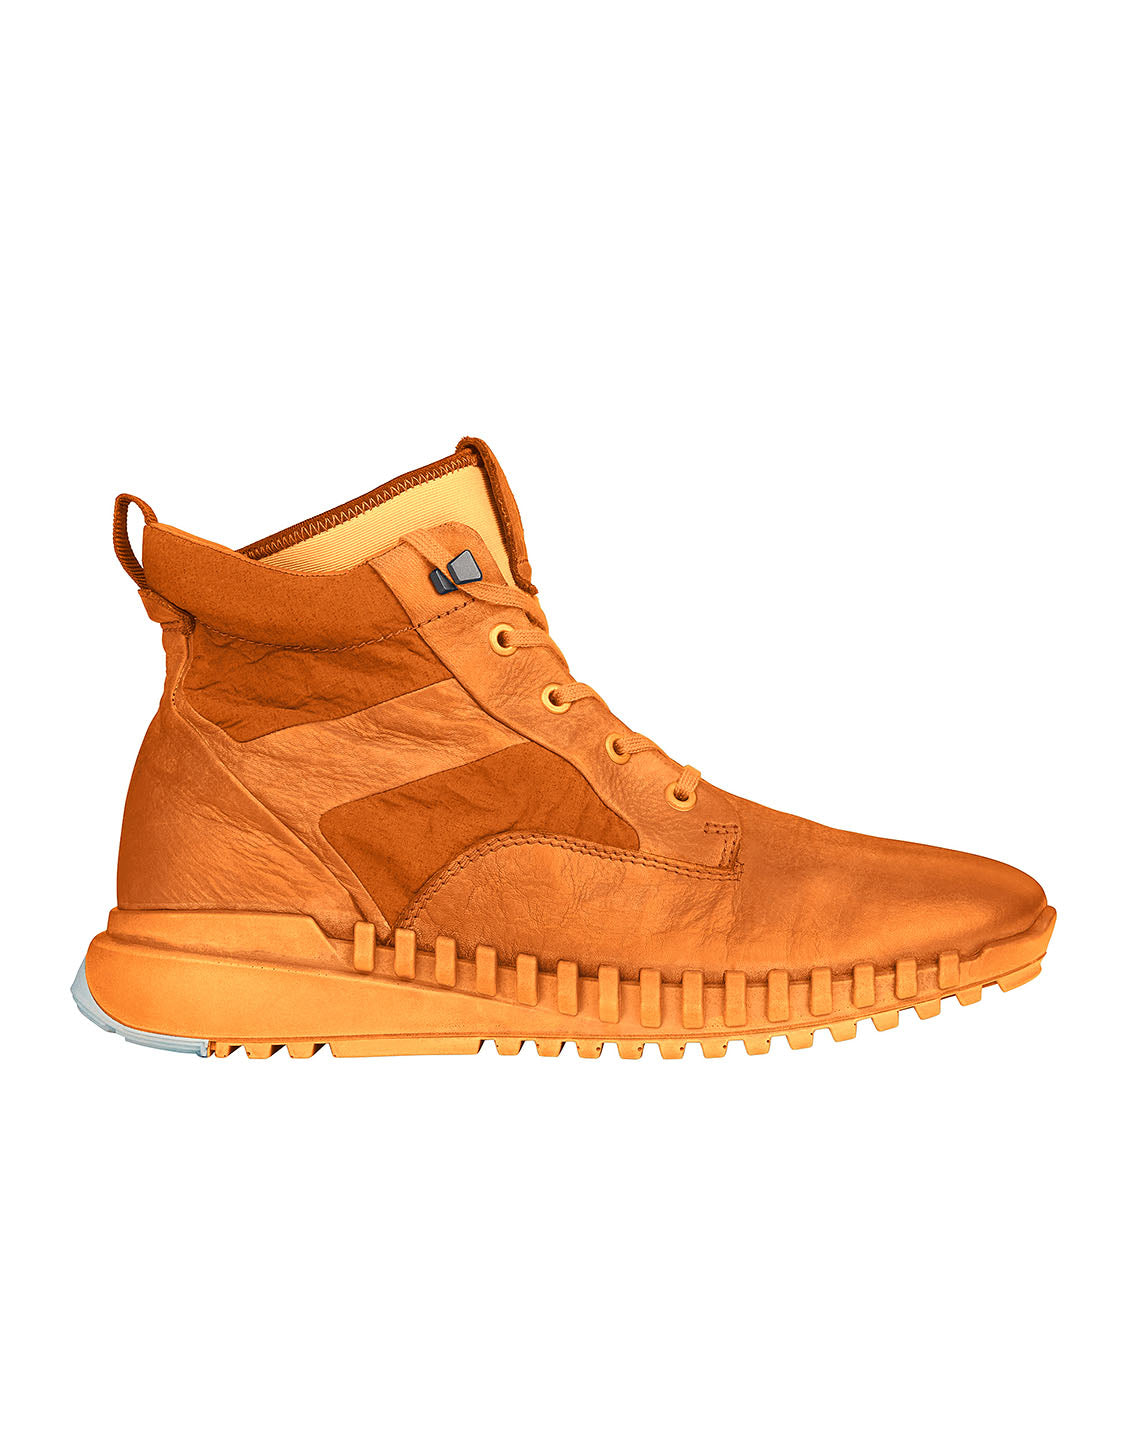 S0796 Garment Dyed Leather Exostrike Boot With Dyneema® in Orange